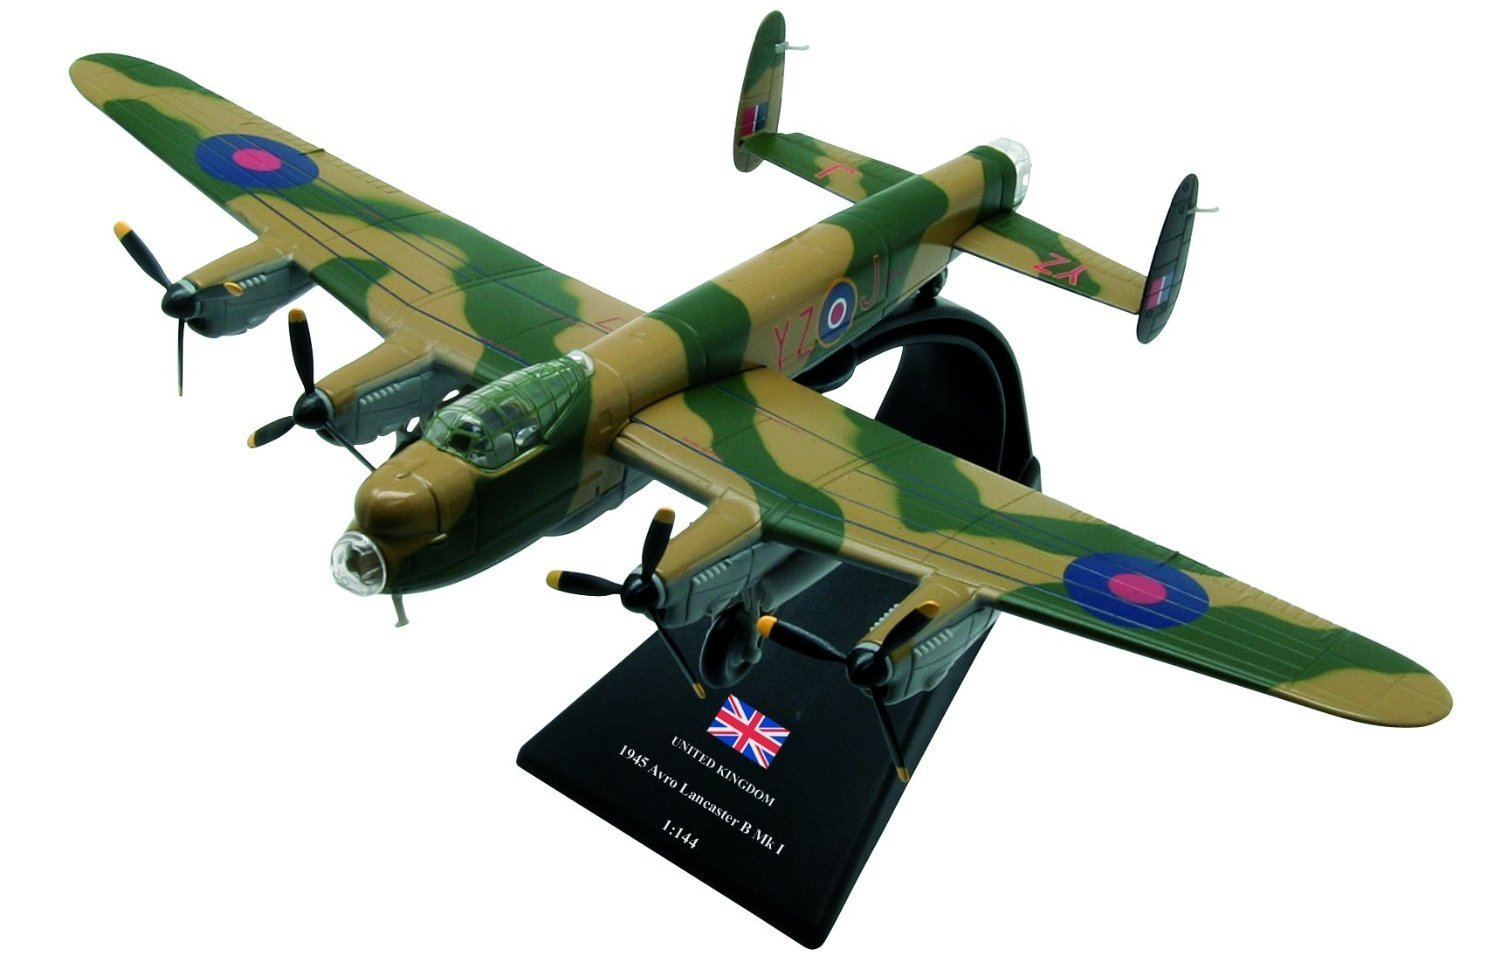 rc jet engines with Tag Avro Lancaster Model on Index further Russia Revives Large Airlifter Design Work additionally Tag Avro Lancaster Model moreover C123 together with Talented Enthusiast Builds Britains Largest Jet Engine Model Aeroplane.